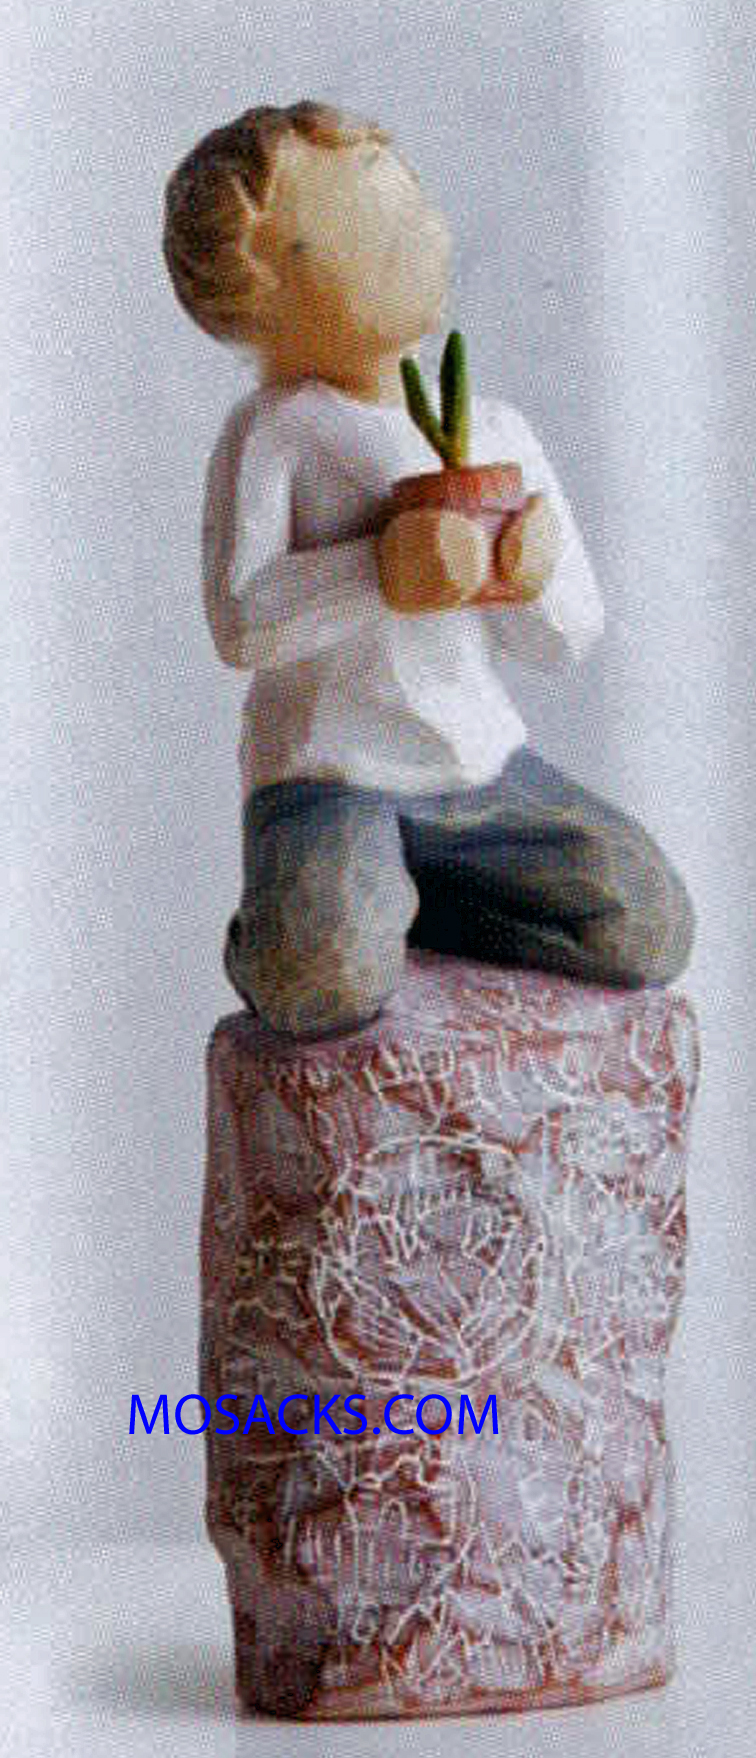 "Willow Tree Figurine, Something Special: You make the world a better place, 5.5"" High 27269. This is a figurine of a small boy kneeling on a rock or stump with a flower pot in his hands 27269 FREE SHIPPING WITH $100. ORDERS"